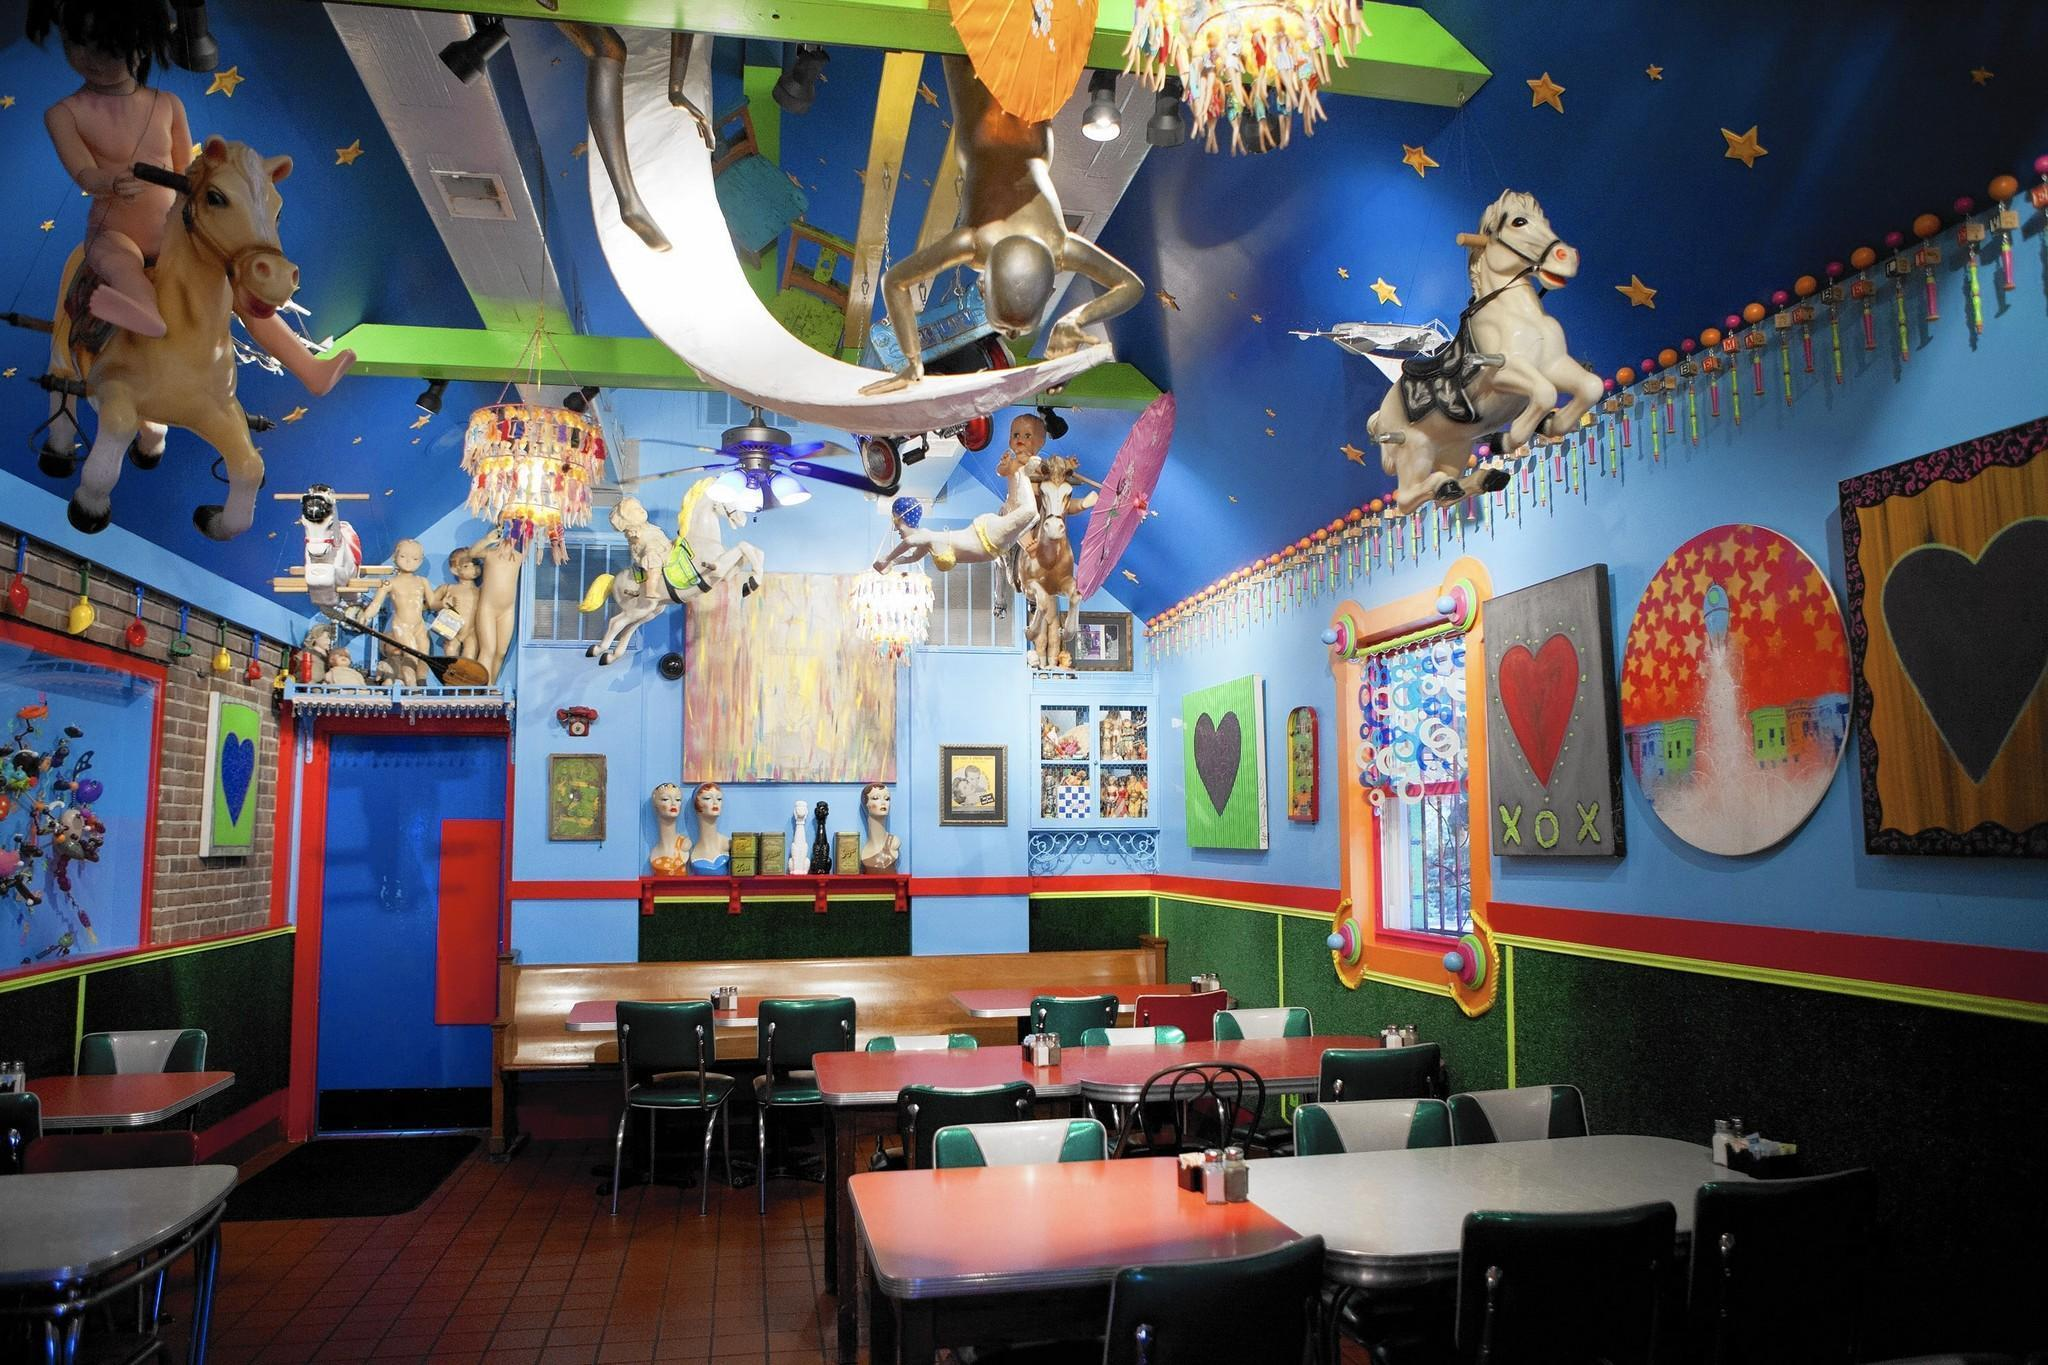 As Remington Grows Papermoon Diner Keeps To Its Own Orbit